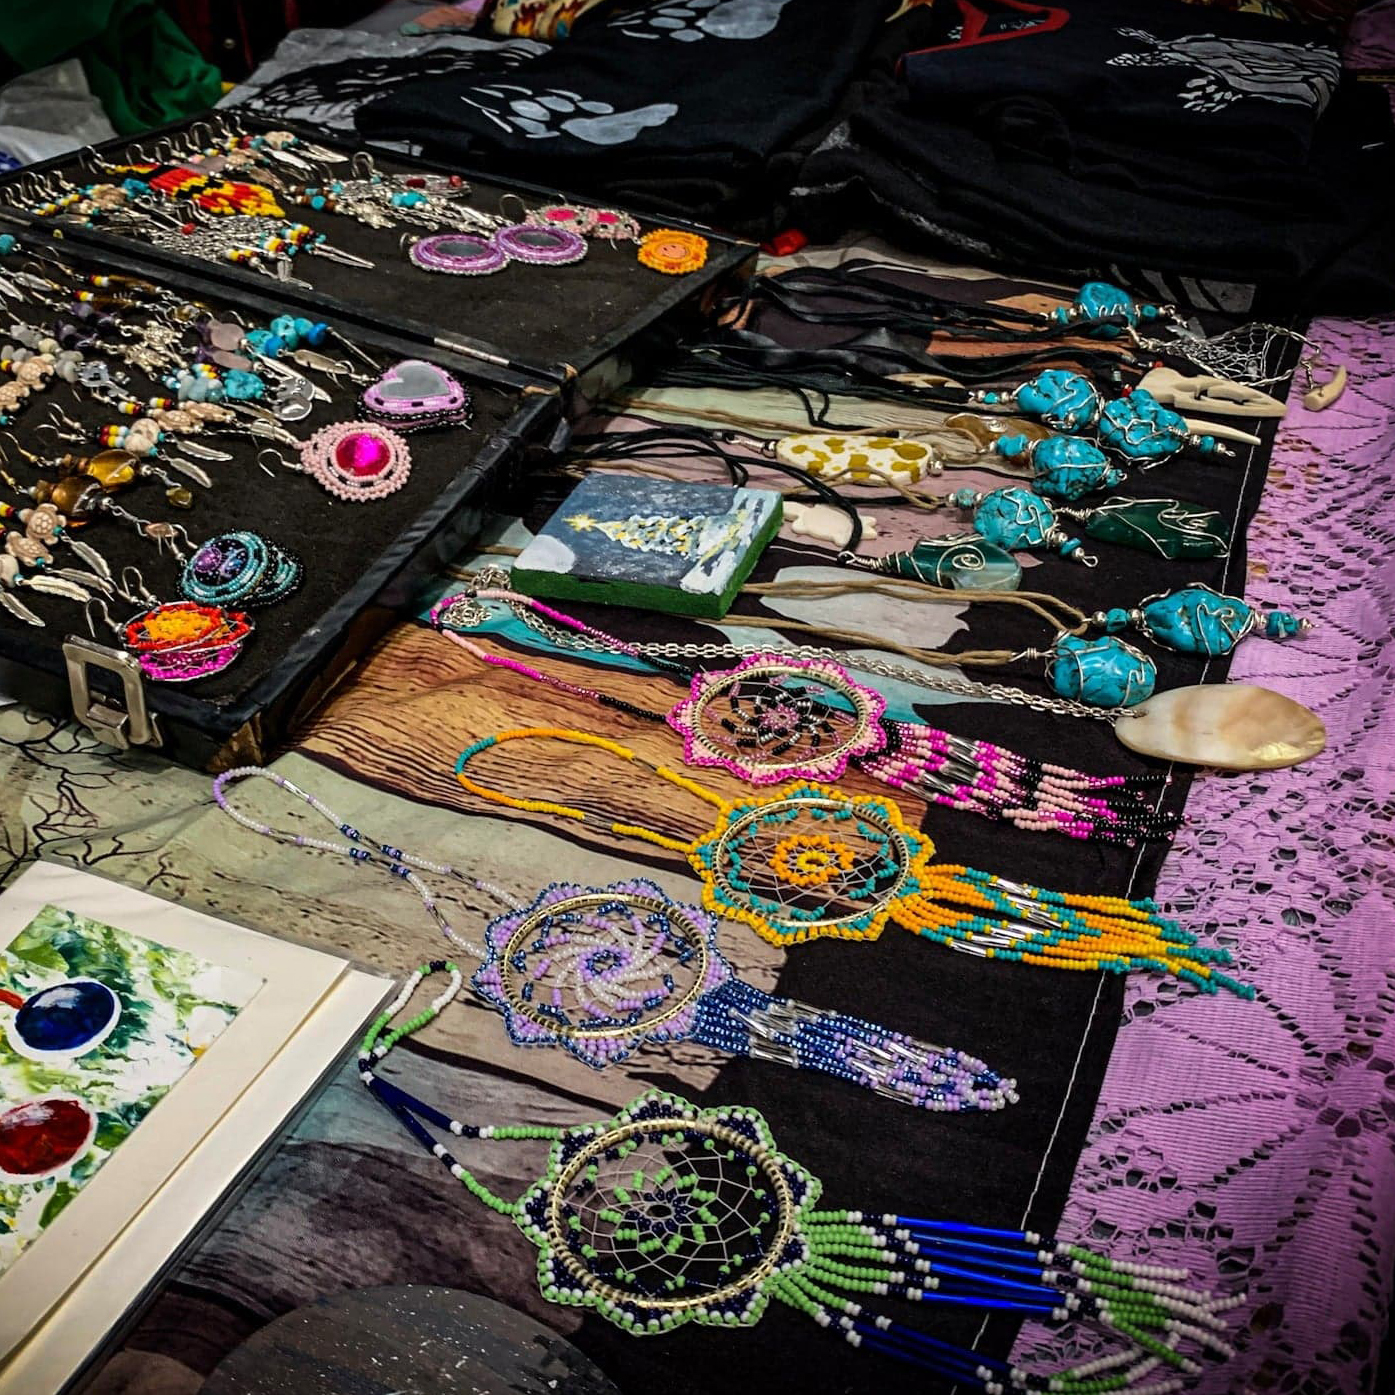 Melanie Montour, Native Artisan Designs, beadwork, beader, jewelry maker, jewelry, leatherwork, mixed media, painting, painter, regalia, stone carver, carving, crafts, craft maker, Indigenous Artist, First Nations, Indigenous Arts Collective of Canada, Pass The Feather